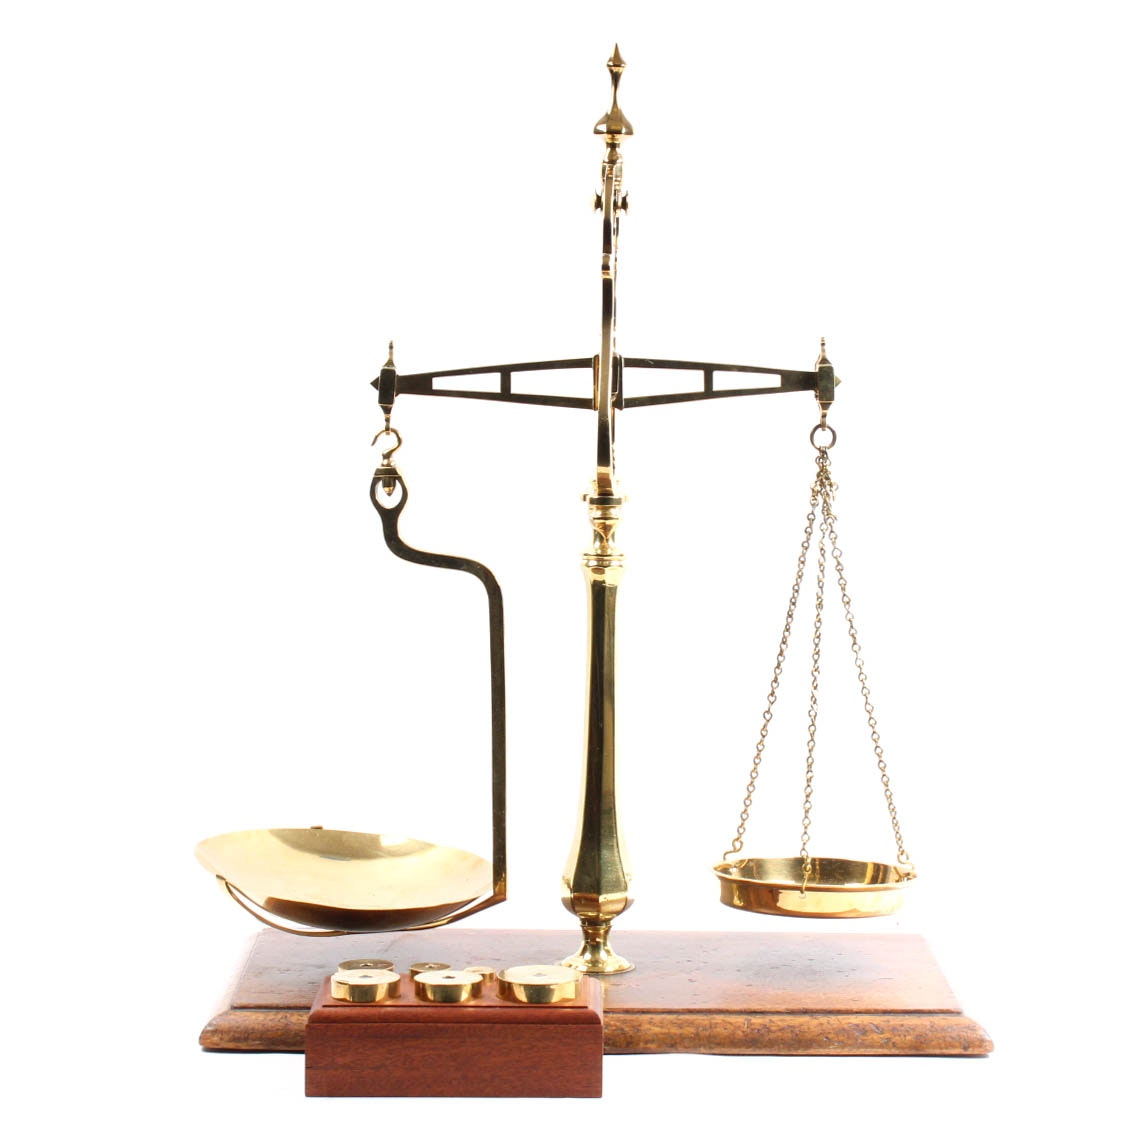 Vintage English Brass Scale and Weights